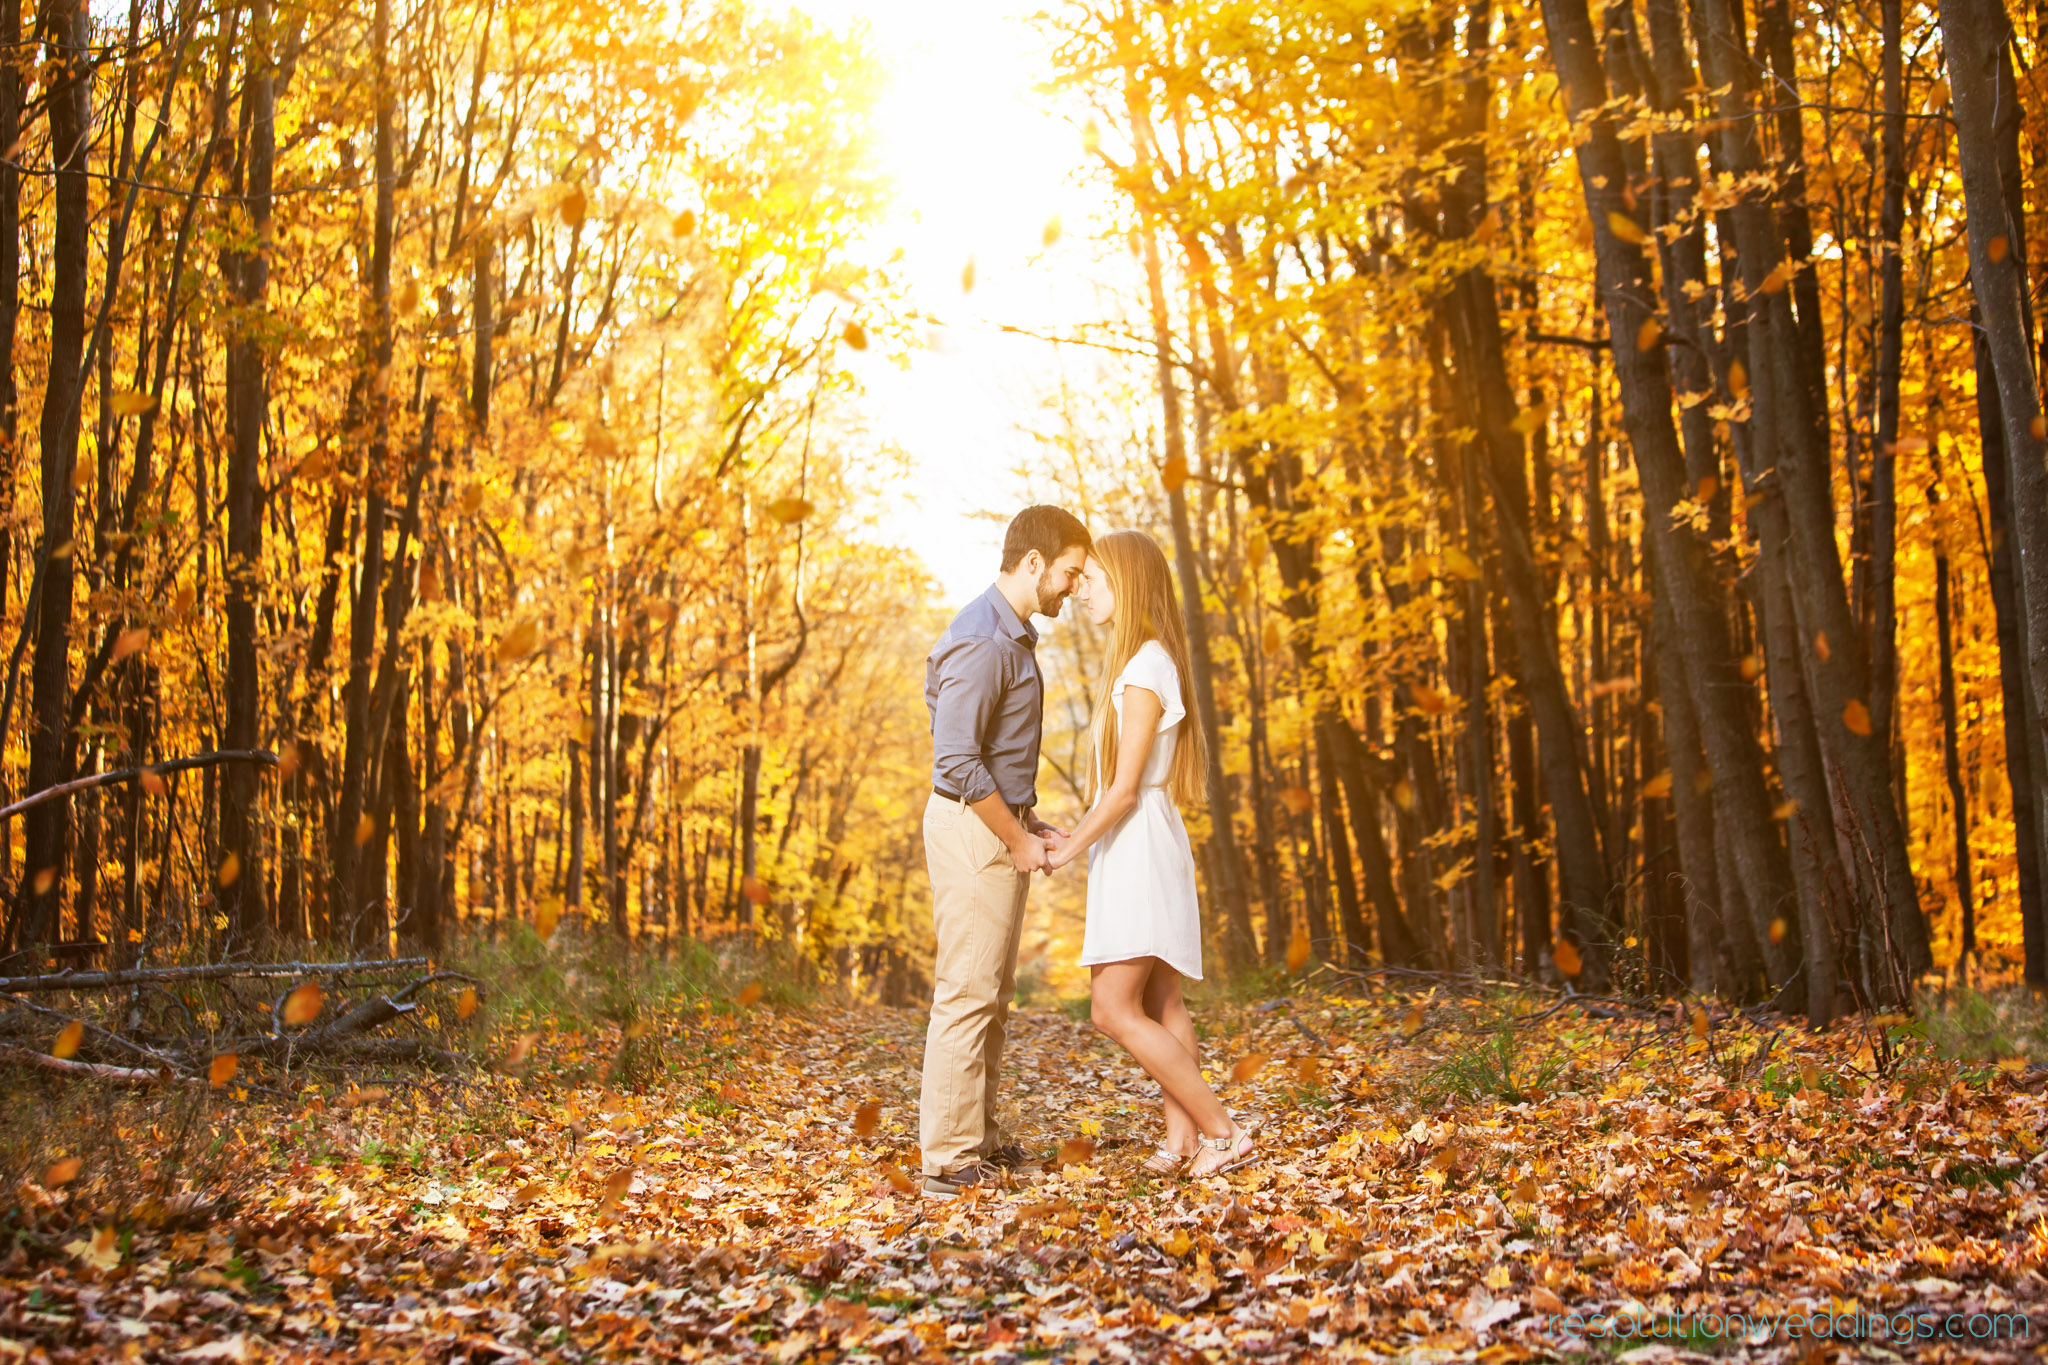 Best Wedding Pictures Green Bay, WI Engagement Photographer | Resolution Photography